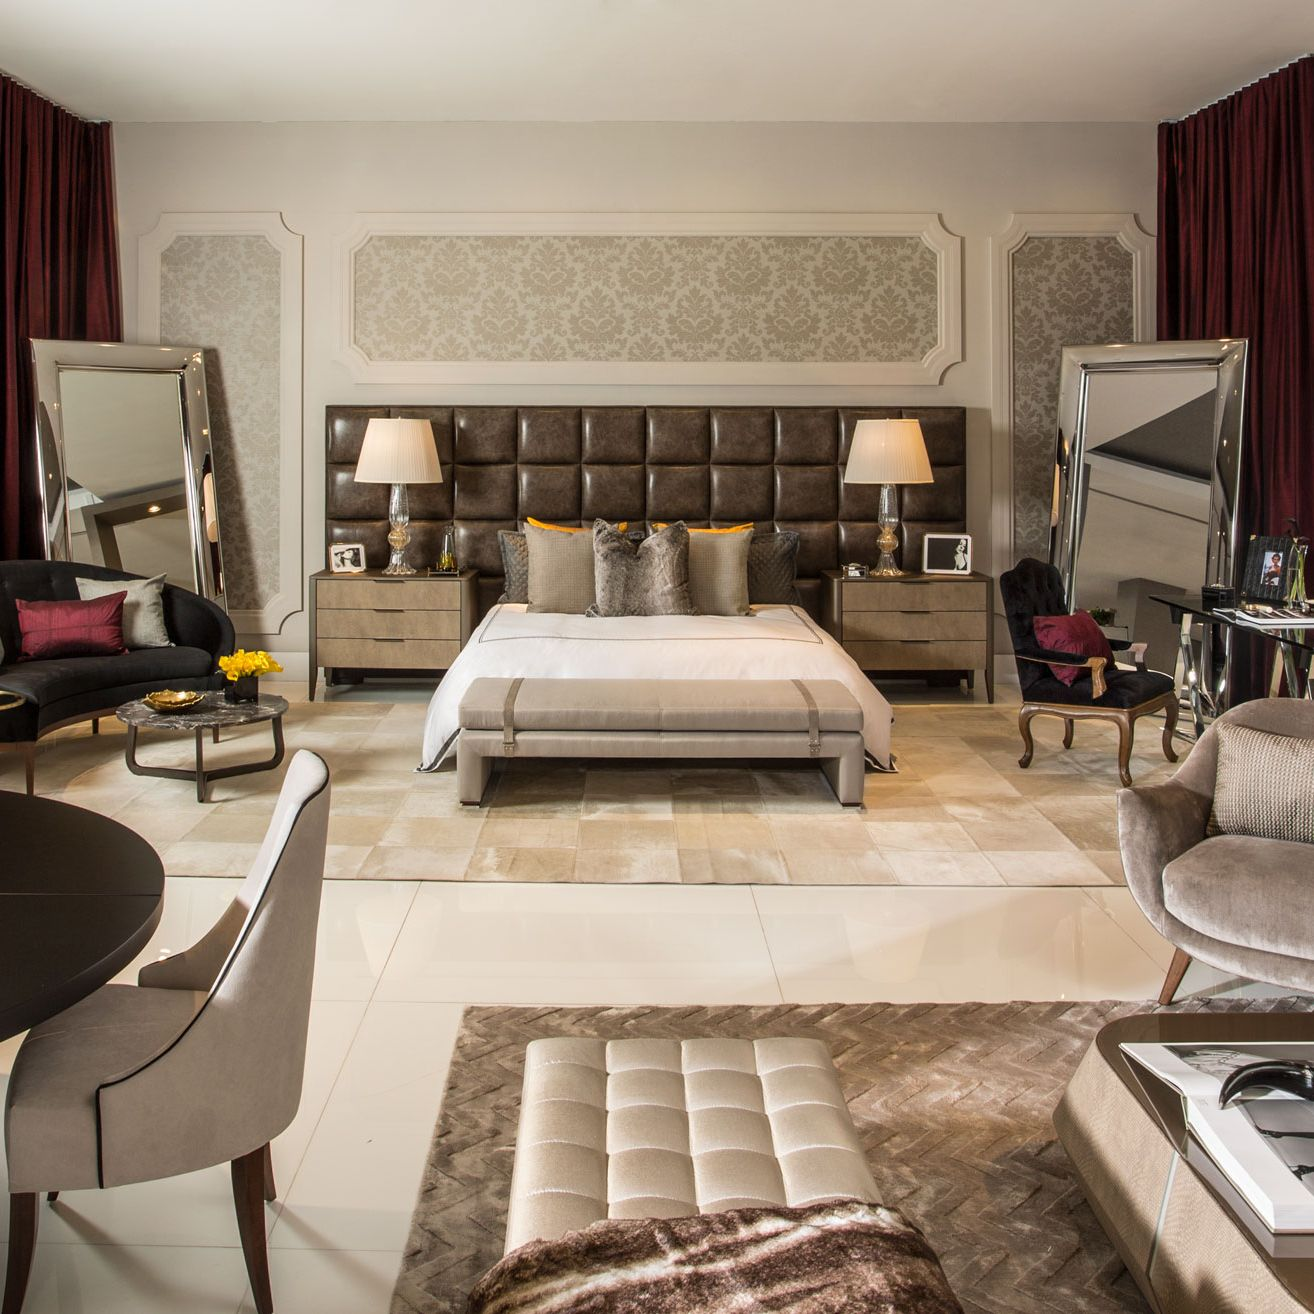 <p>Cary Fernandez paired with Dolce &amp&#x3B; Gabbana for her first appearance at the Design House, and created a bedroom concept revolving around deep maroons and beiges. Curvy arrangements and leather pieces help to exude D&amp&#x3B;G's authentic elegance. </p>